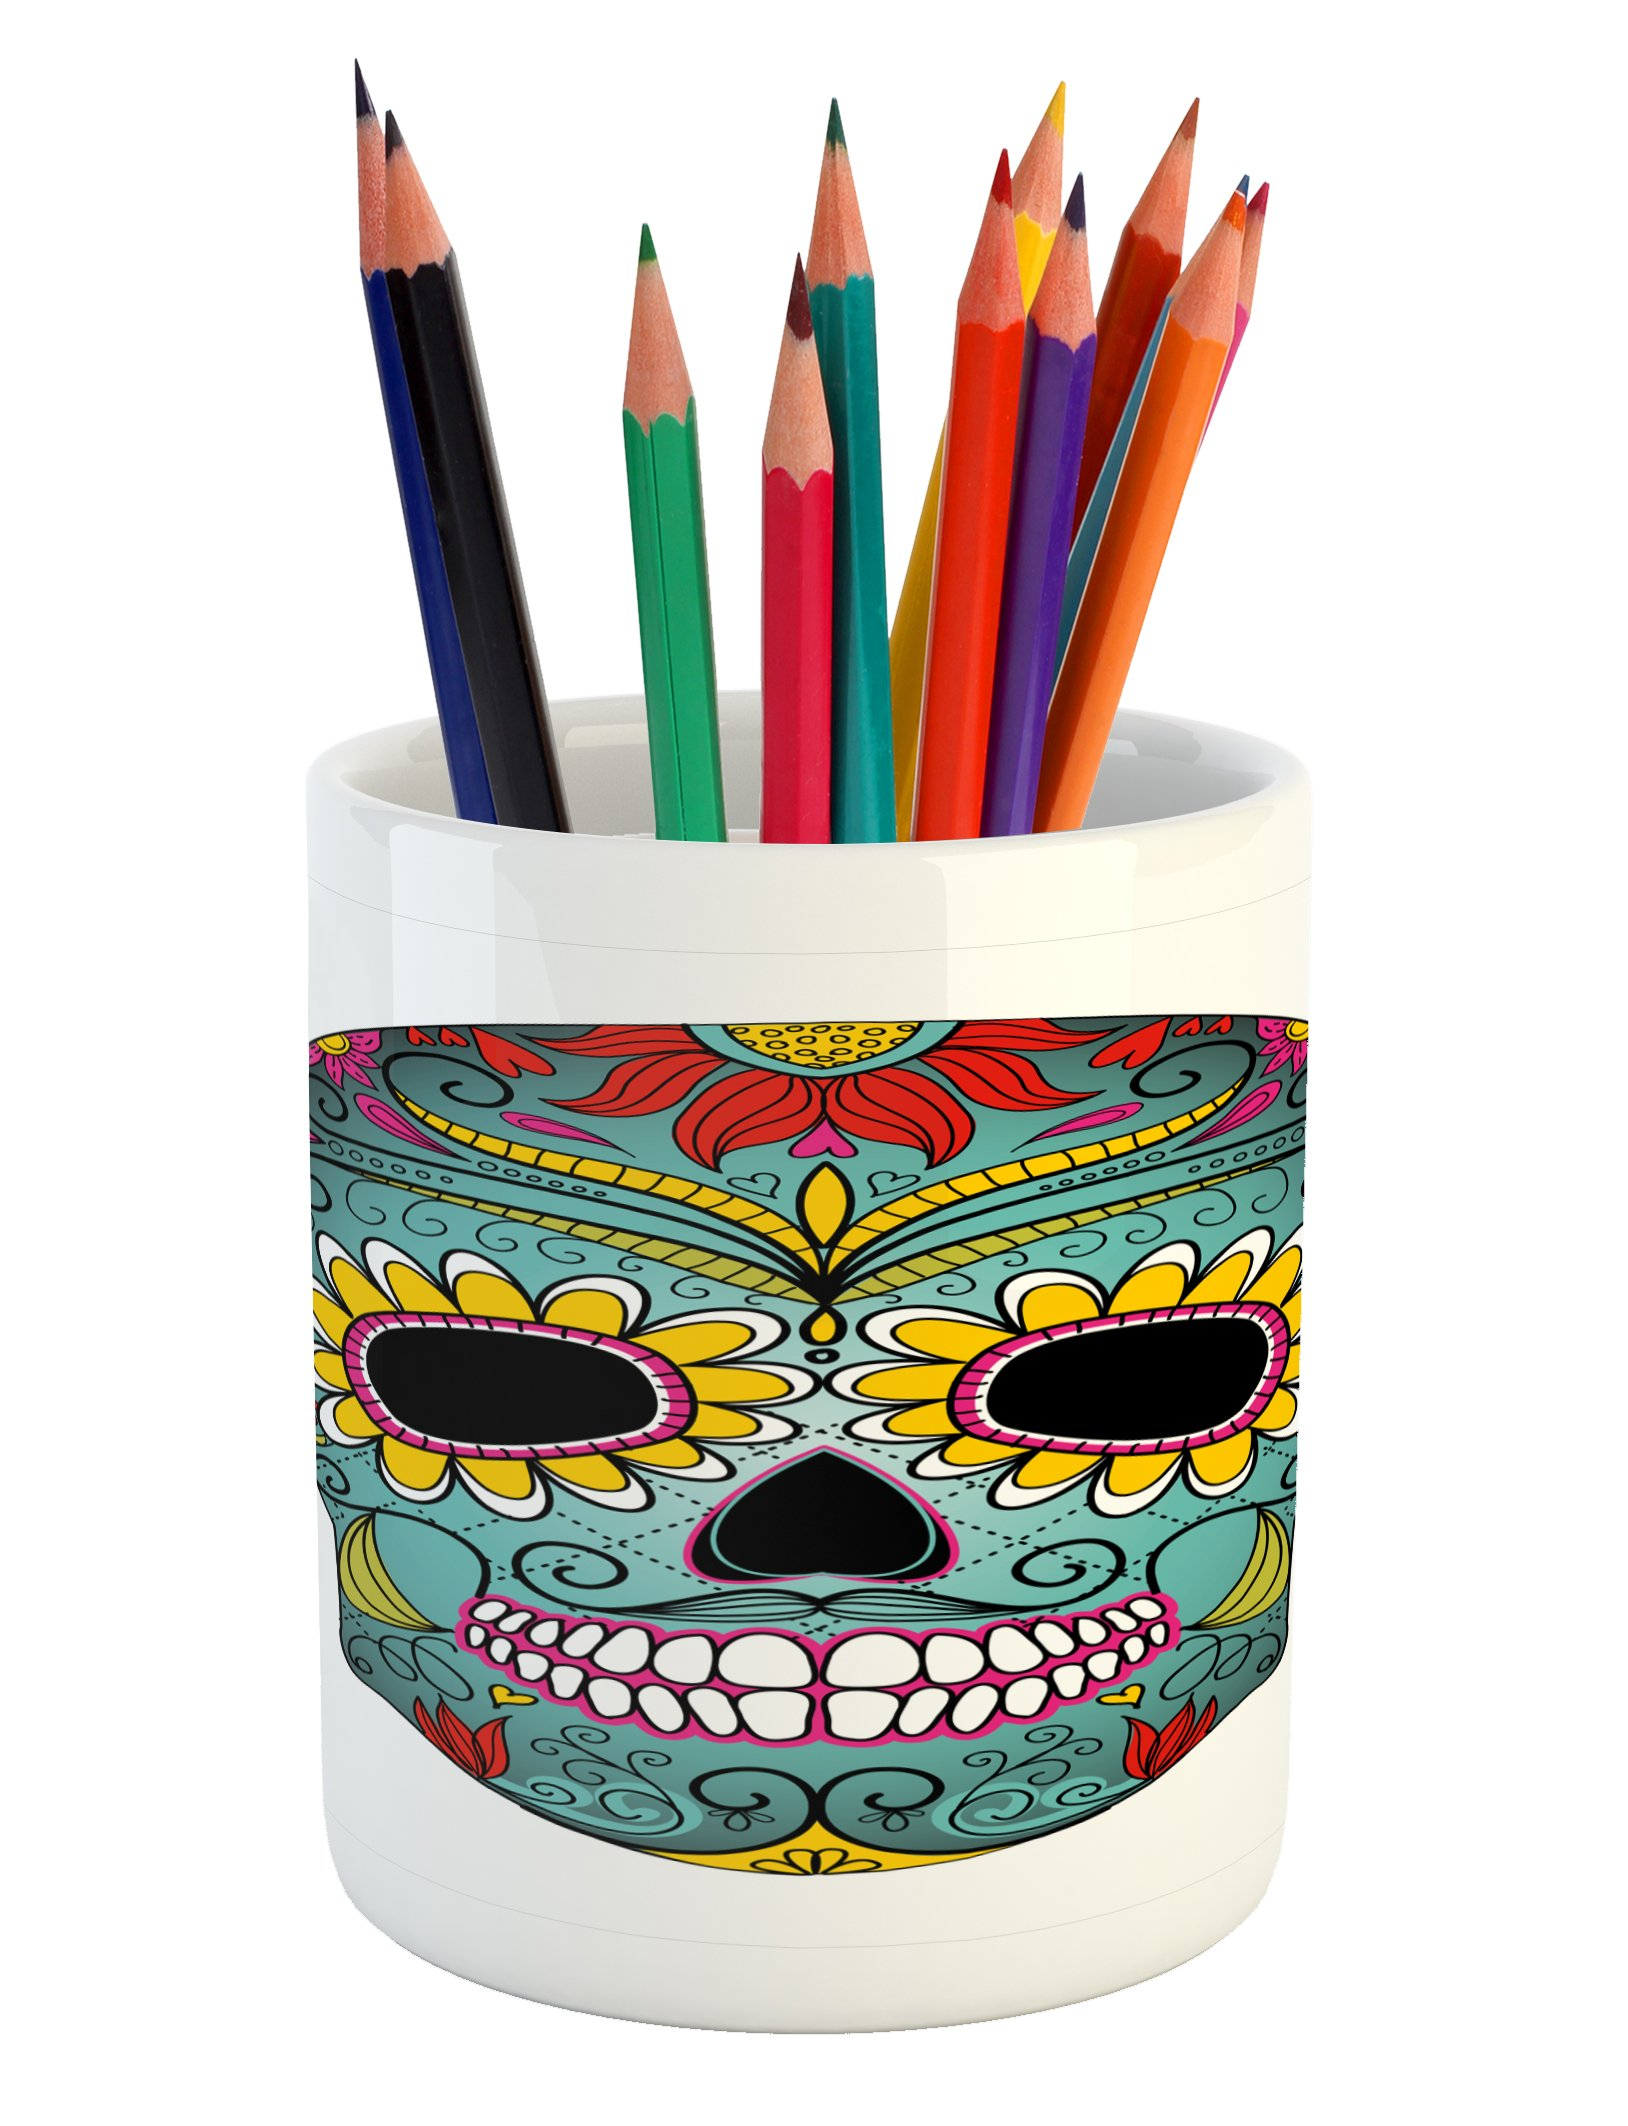 Ambesonne Sugar Skull Pencil Pen Holder, Folk Art Elements Featured Skull Day of The Dead Celebration Concept Print, Printed Ceramic Pencil Pen Holder for Desk Office Accessory, Multicolor